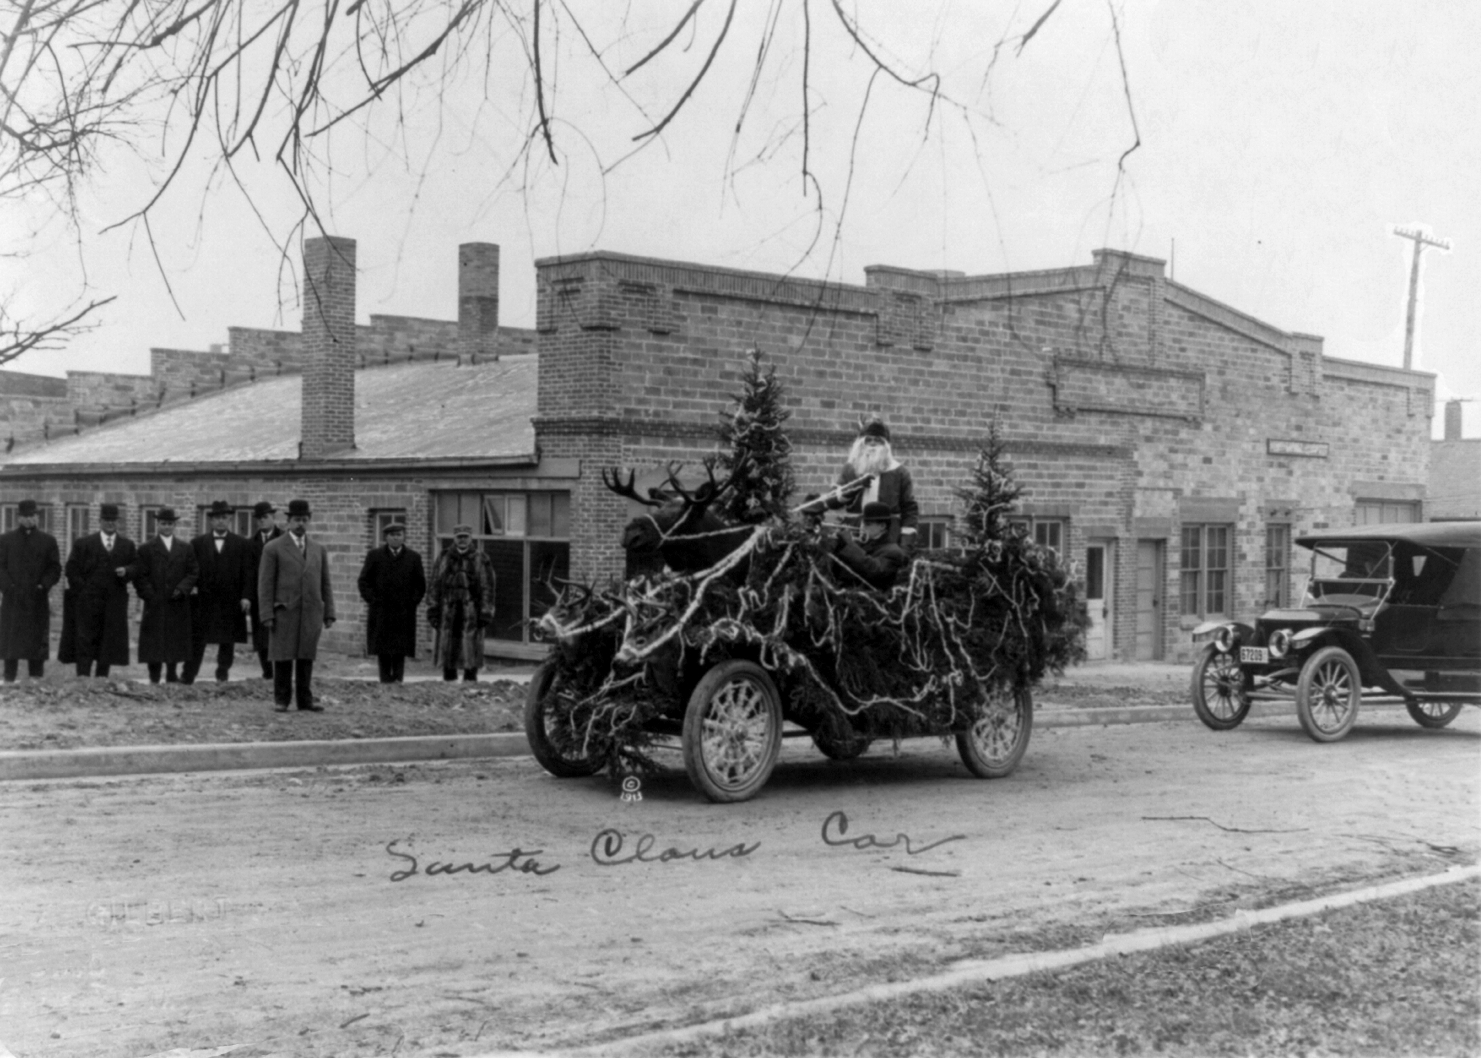 Santa Claus in automobile decorated with Christmas trees, moose and deer heads